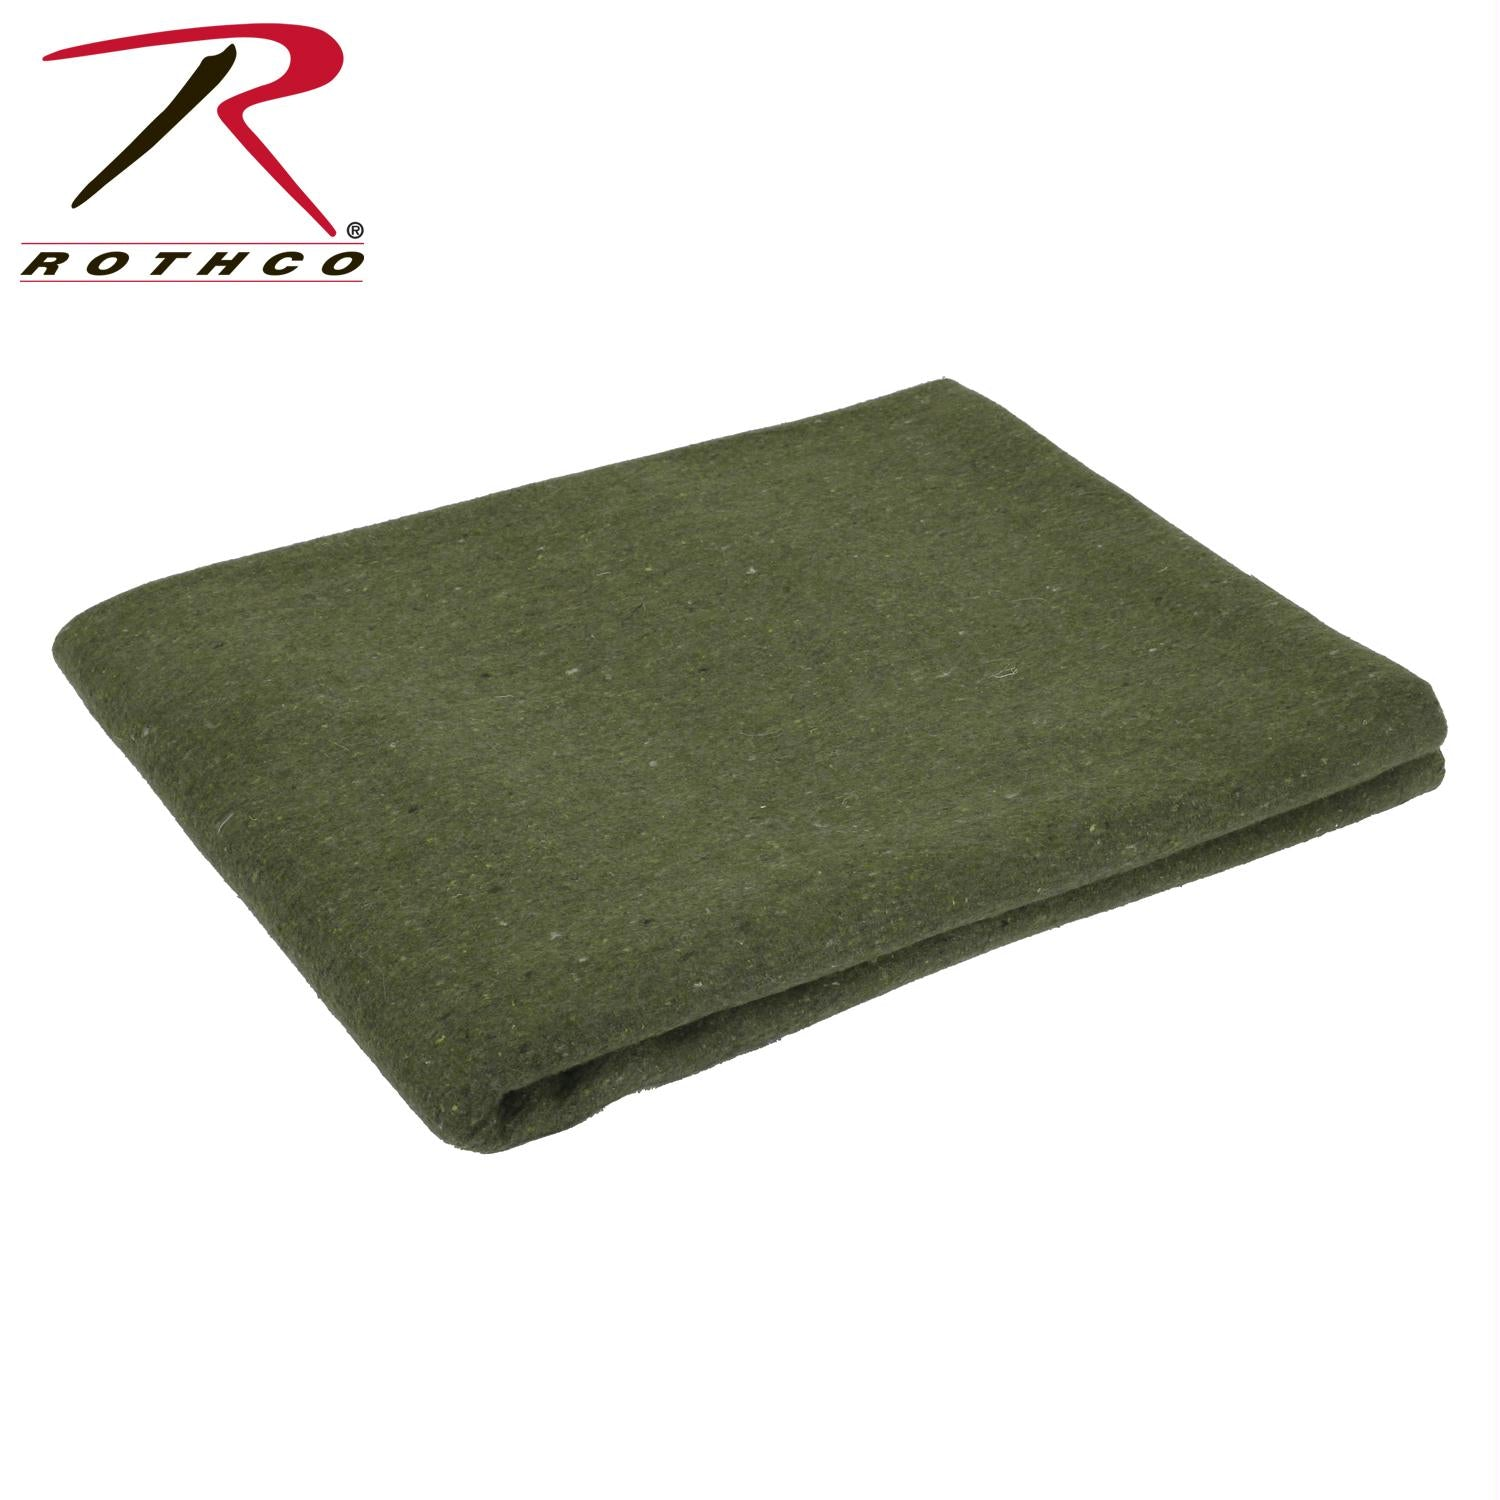 Rothco Rescue Survival Blanket - Olive Drab / 60